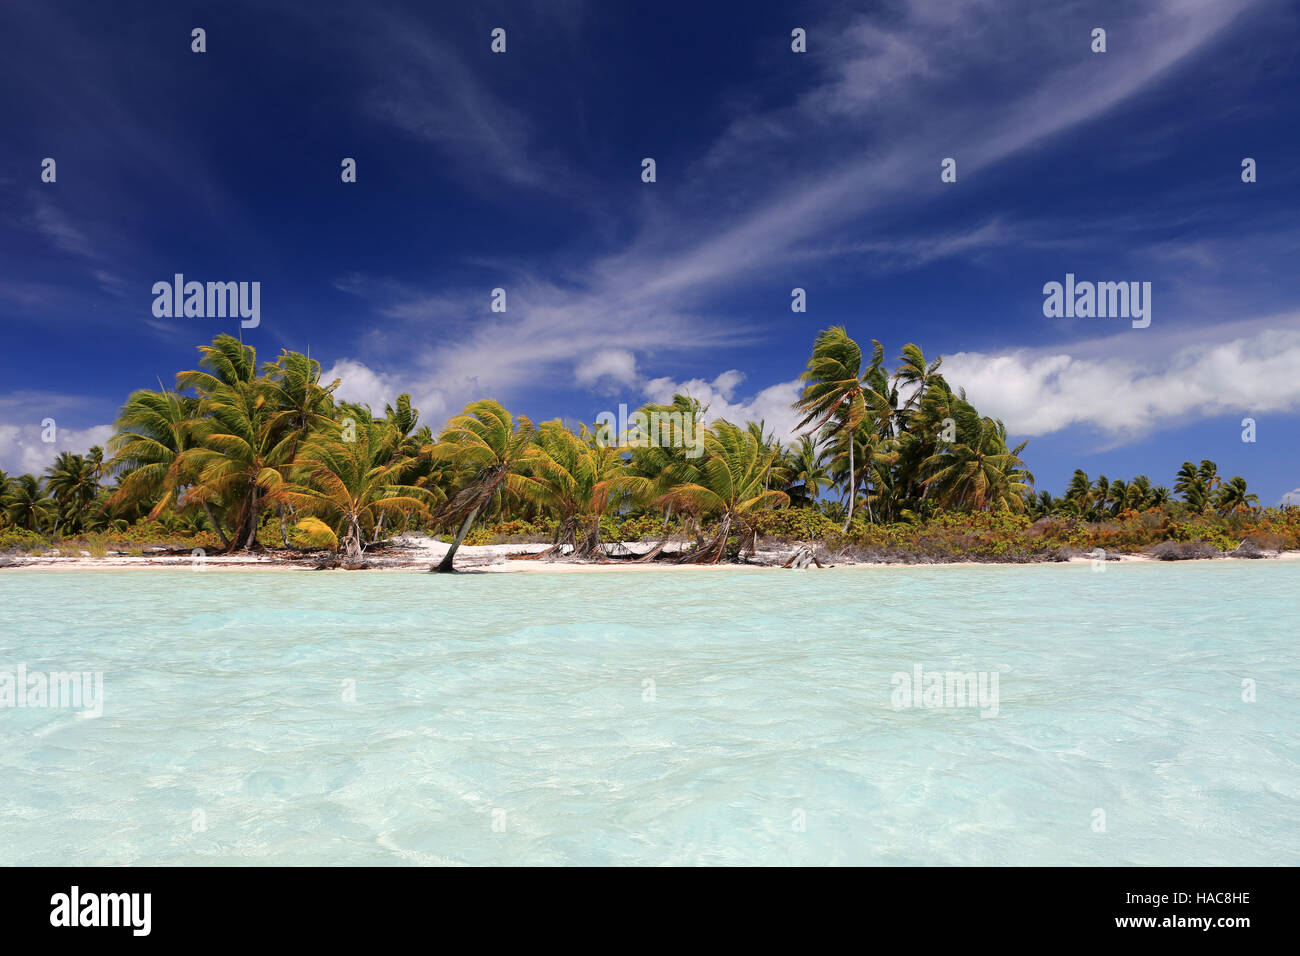 Christmas Island Kiribati Micronesia Stock Photos & Christmas Island ...